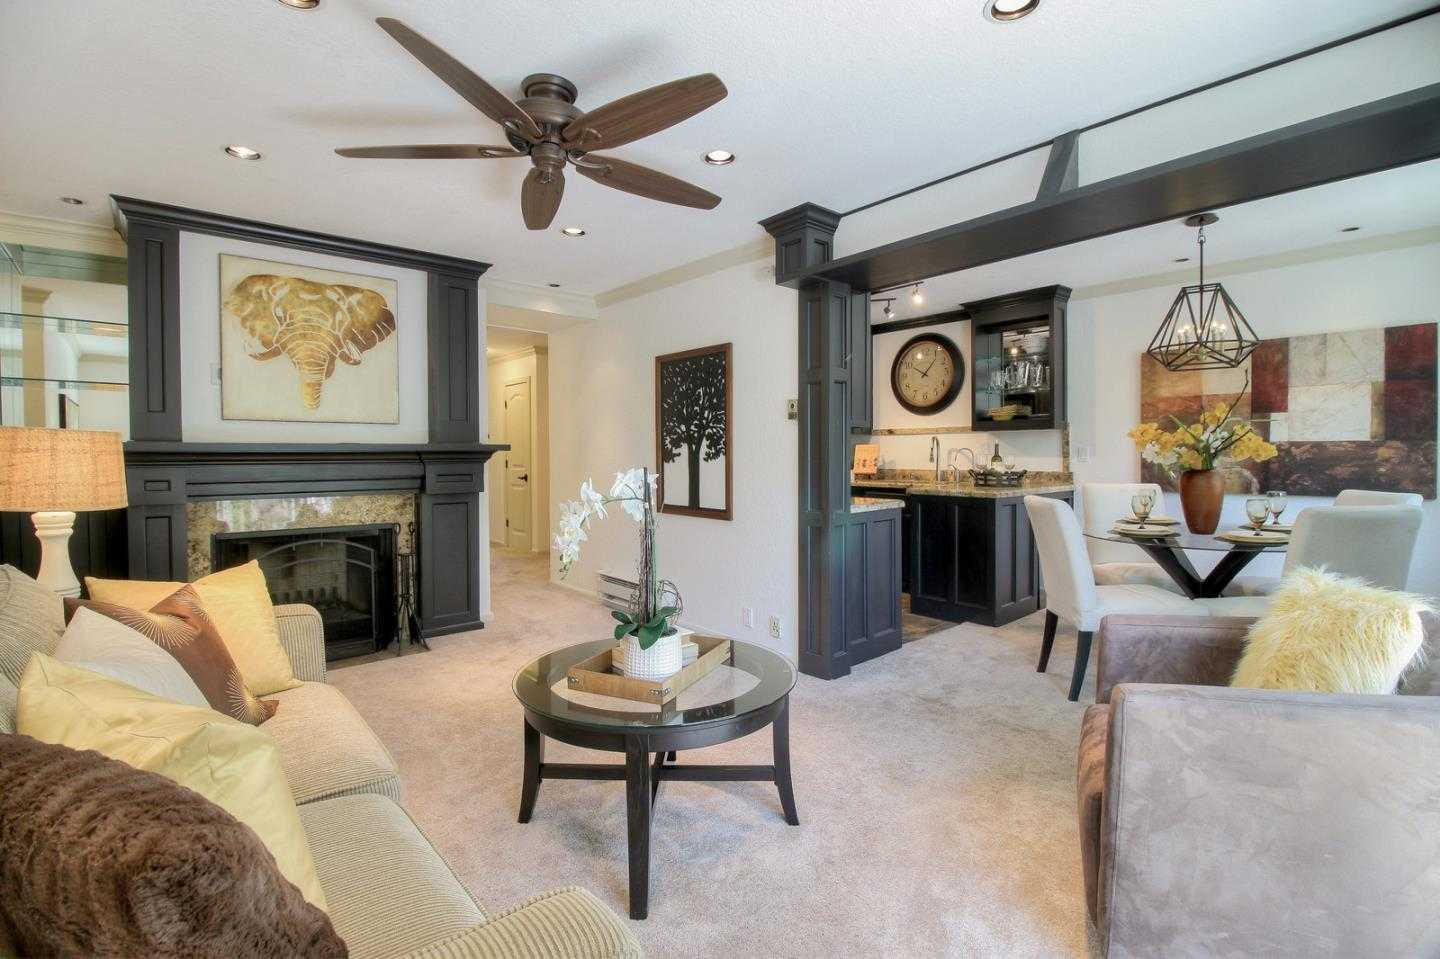 $749,000 - 2Br/2Ba -  for Sale in Campbell